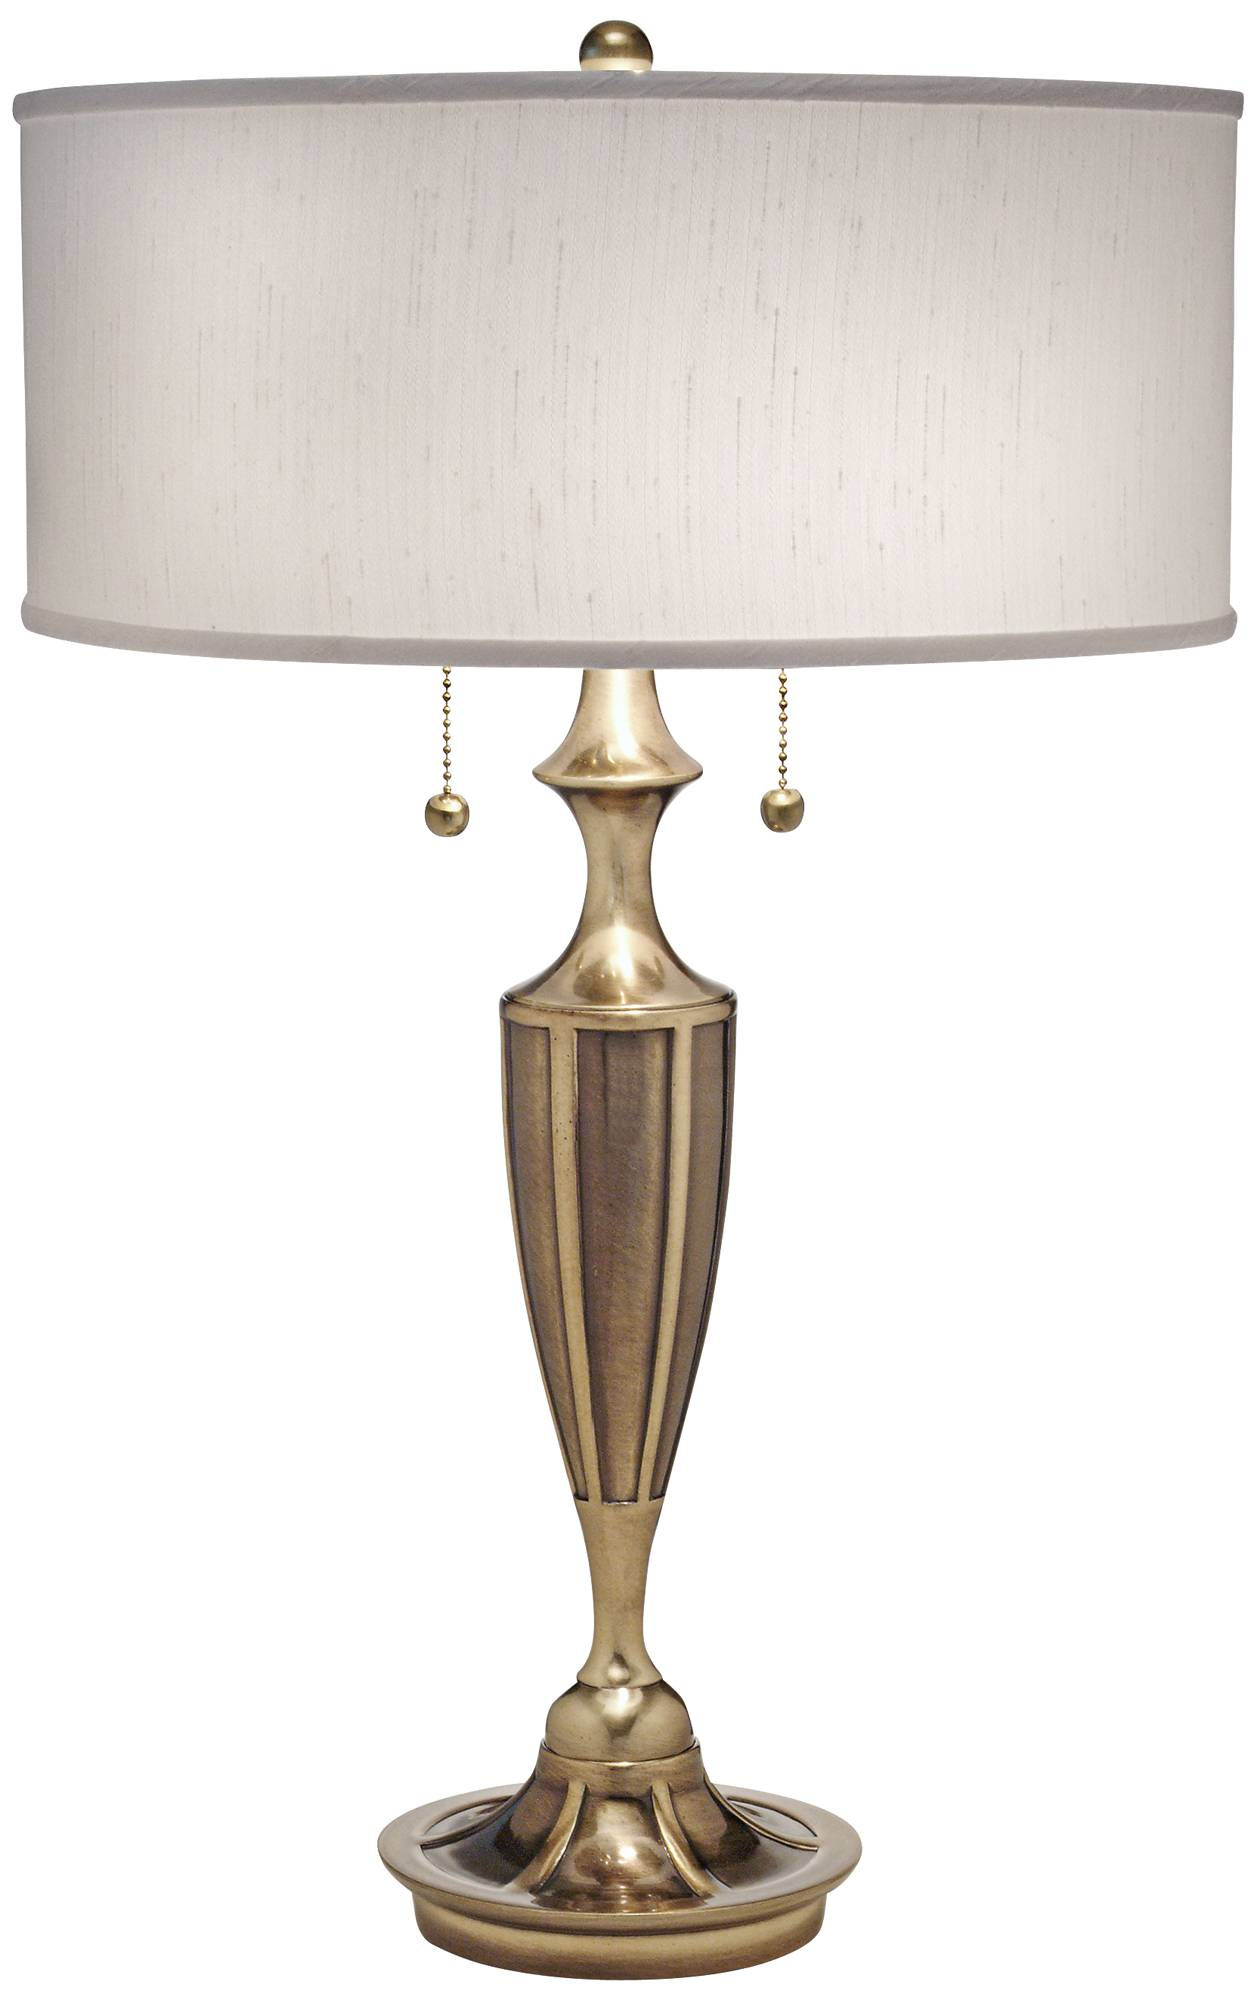 Stiffel white and burnished brass table lamp